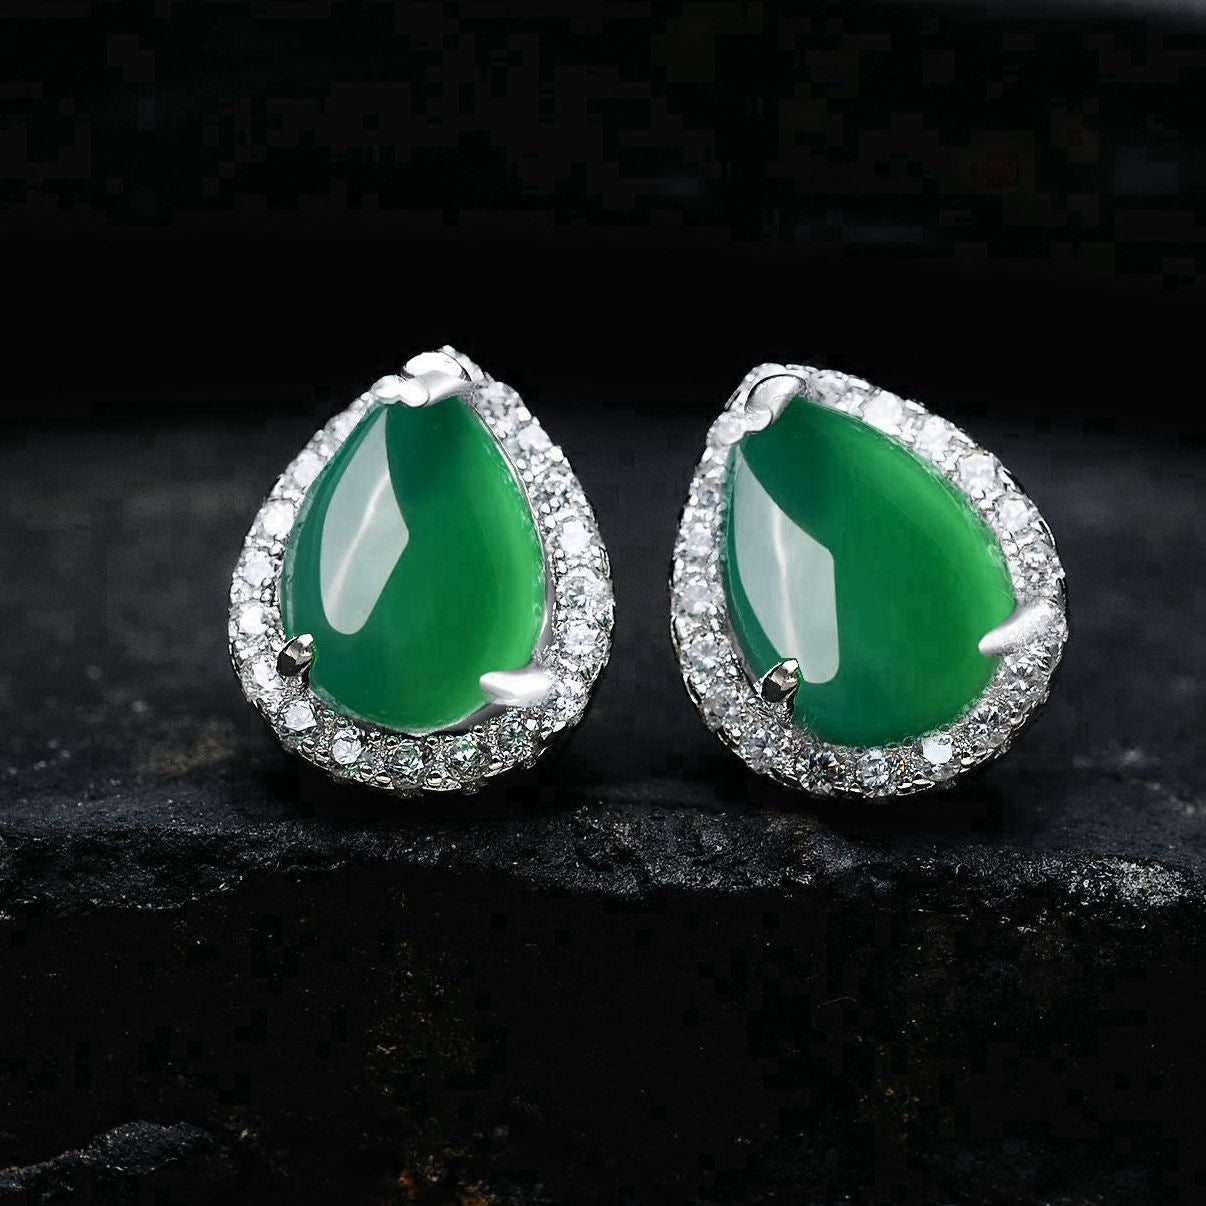 sterling silver stud earrings for women, with charming green agate stones